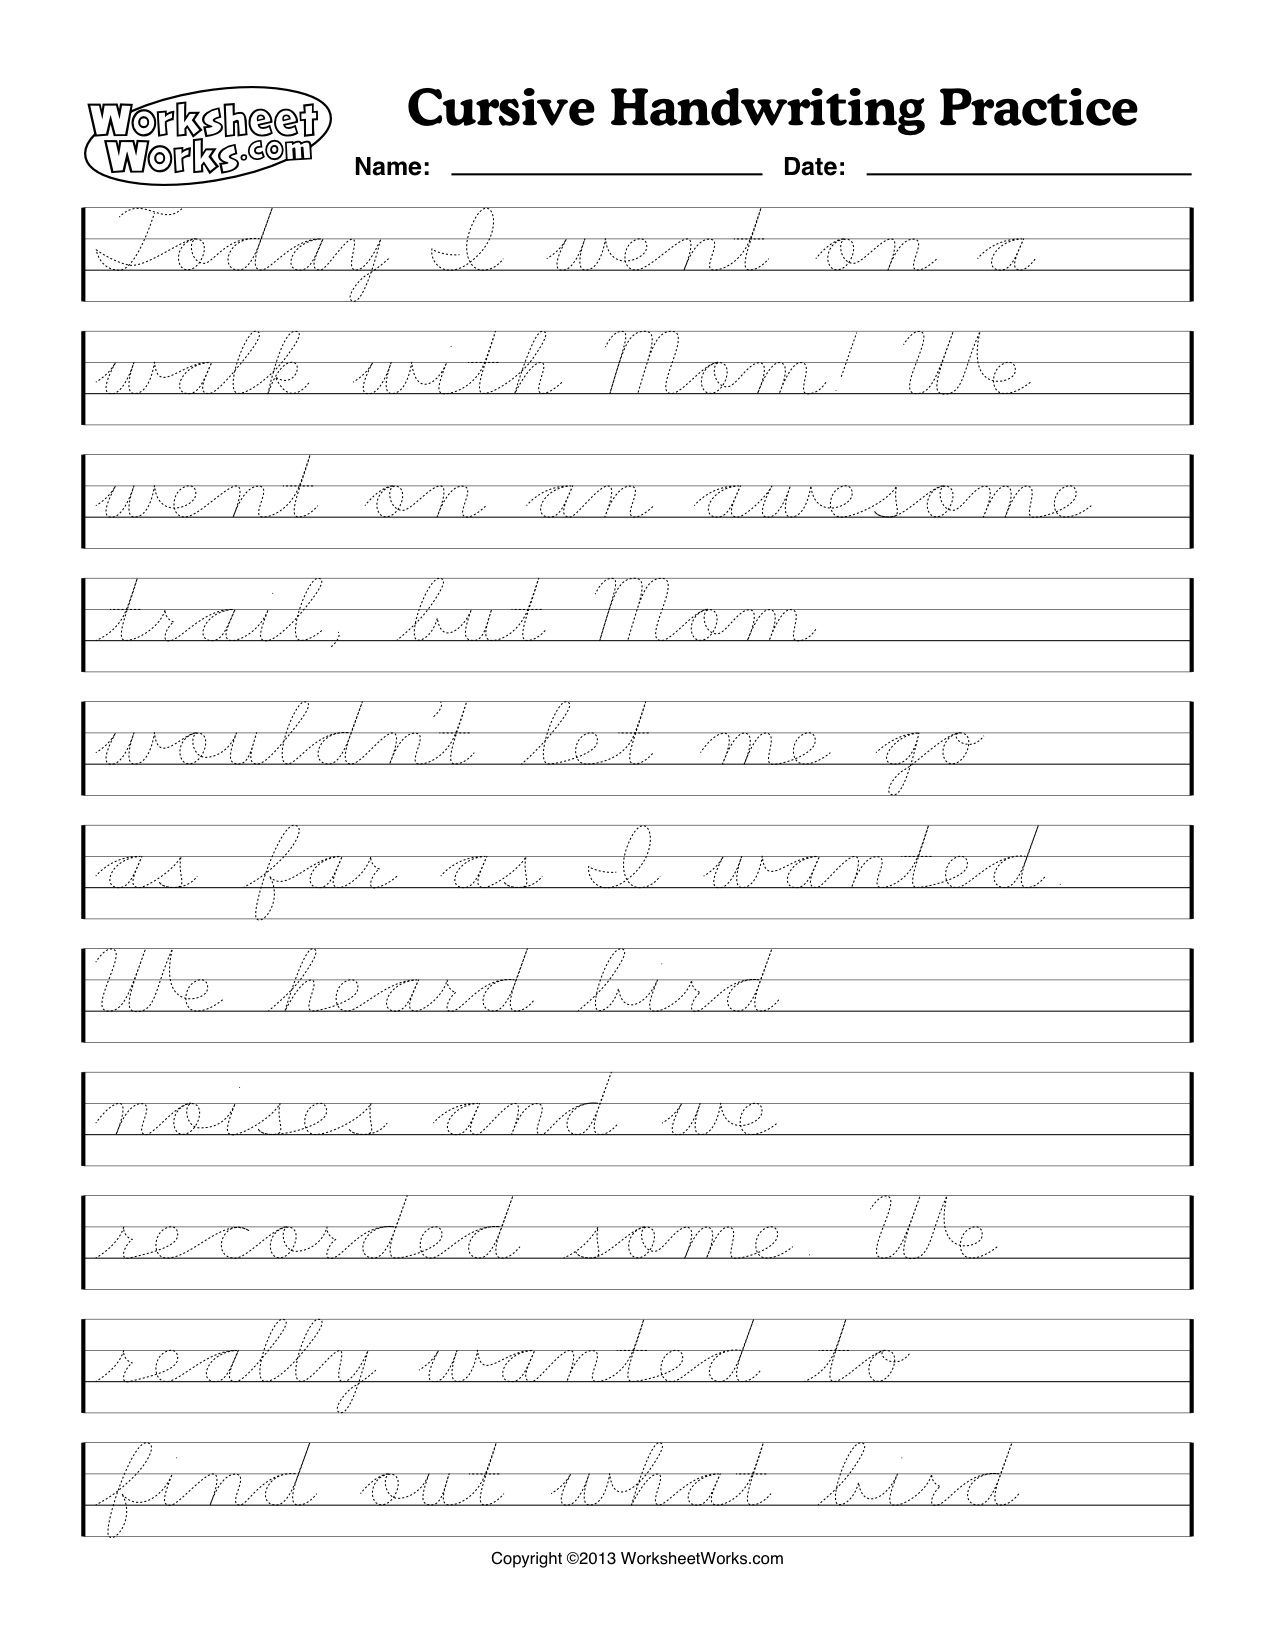 worksheet Jolly Phonics Cursive Writing Worksheets cursive handwriting worksheets writing worksheet one word english pic 18